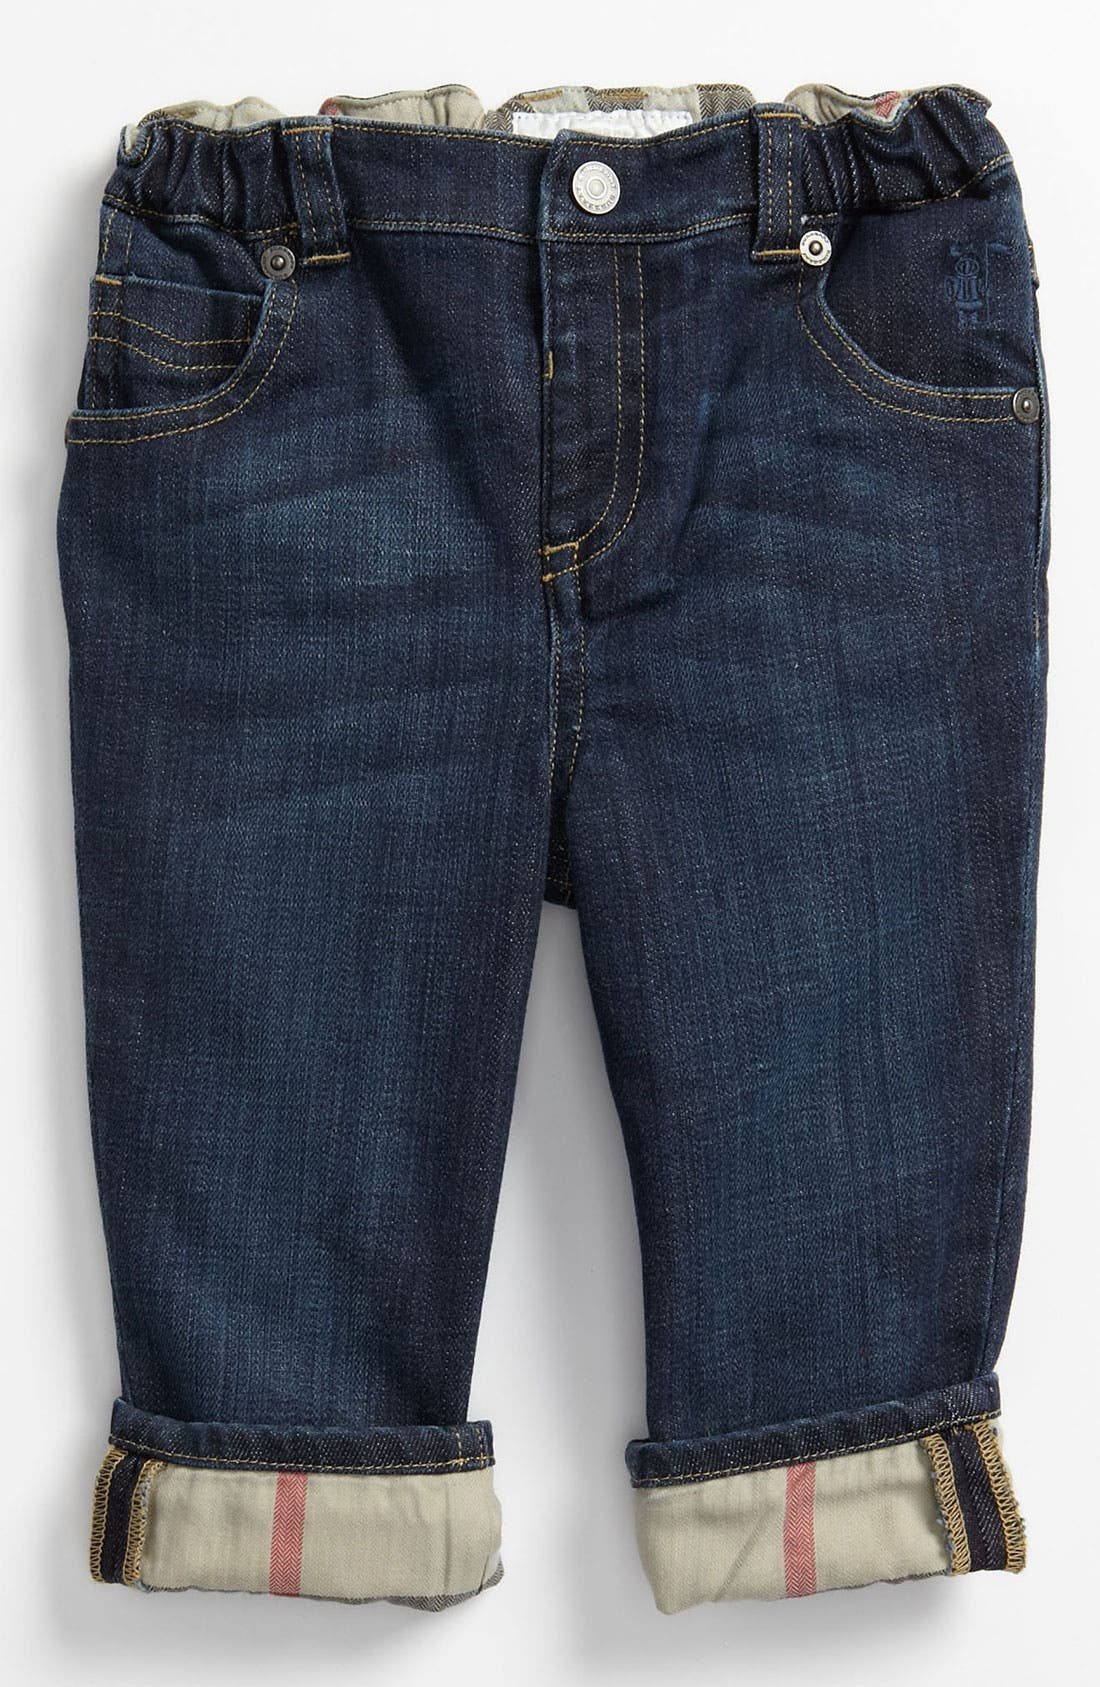 Alternate Image 2  - Burberry Check Lined Jeans (Baby)